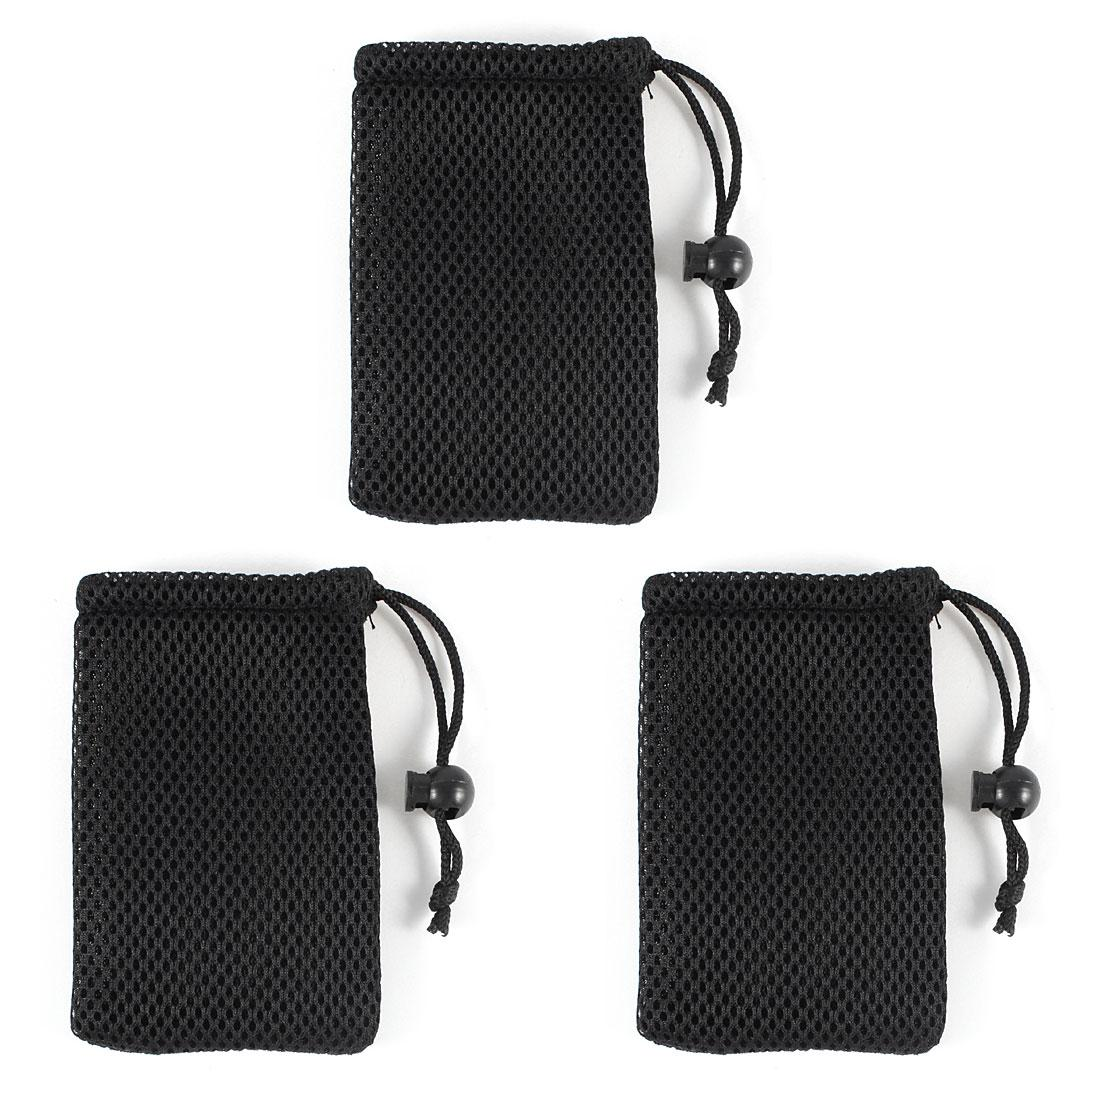 Black Cell Phone Nylon Mesh Drawstring Pouch Bags Mobile Phone ...